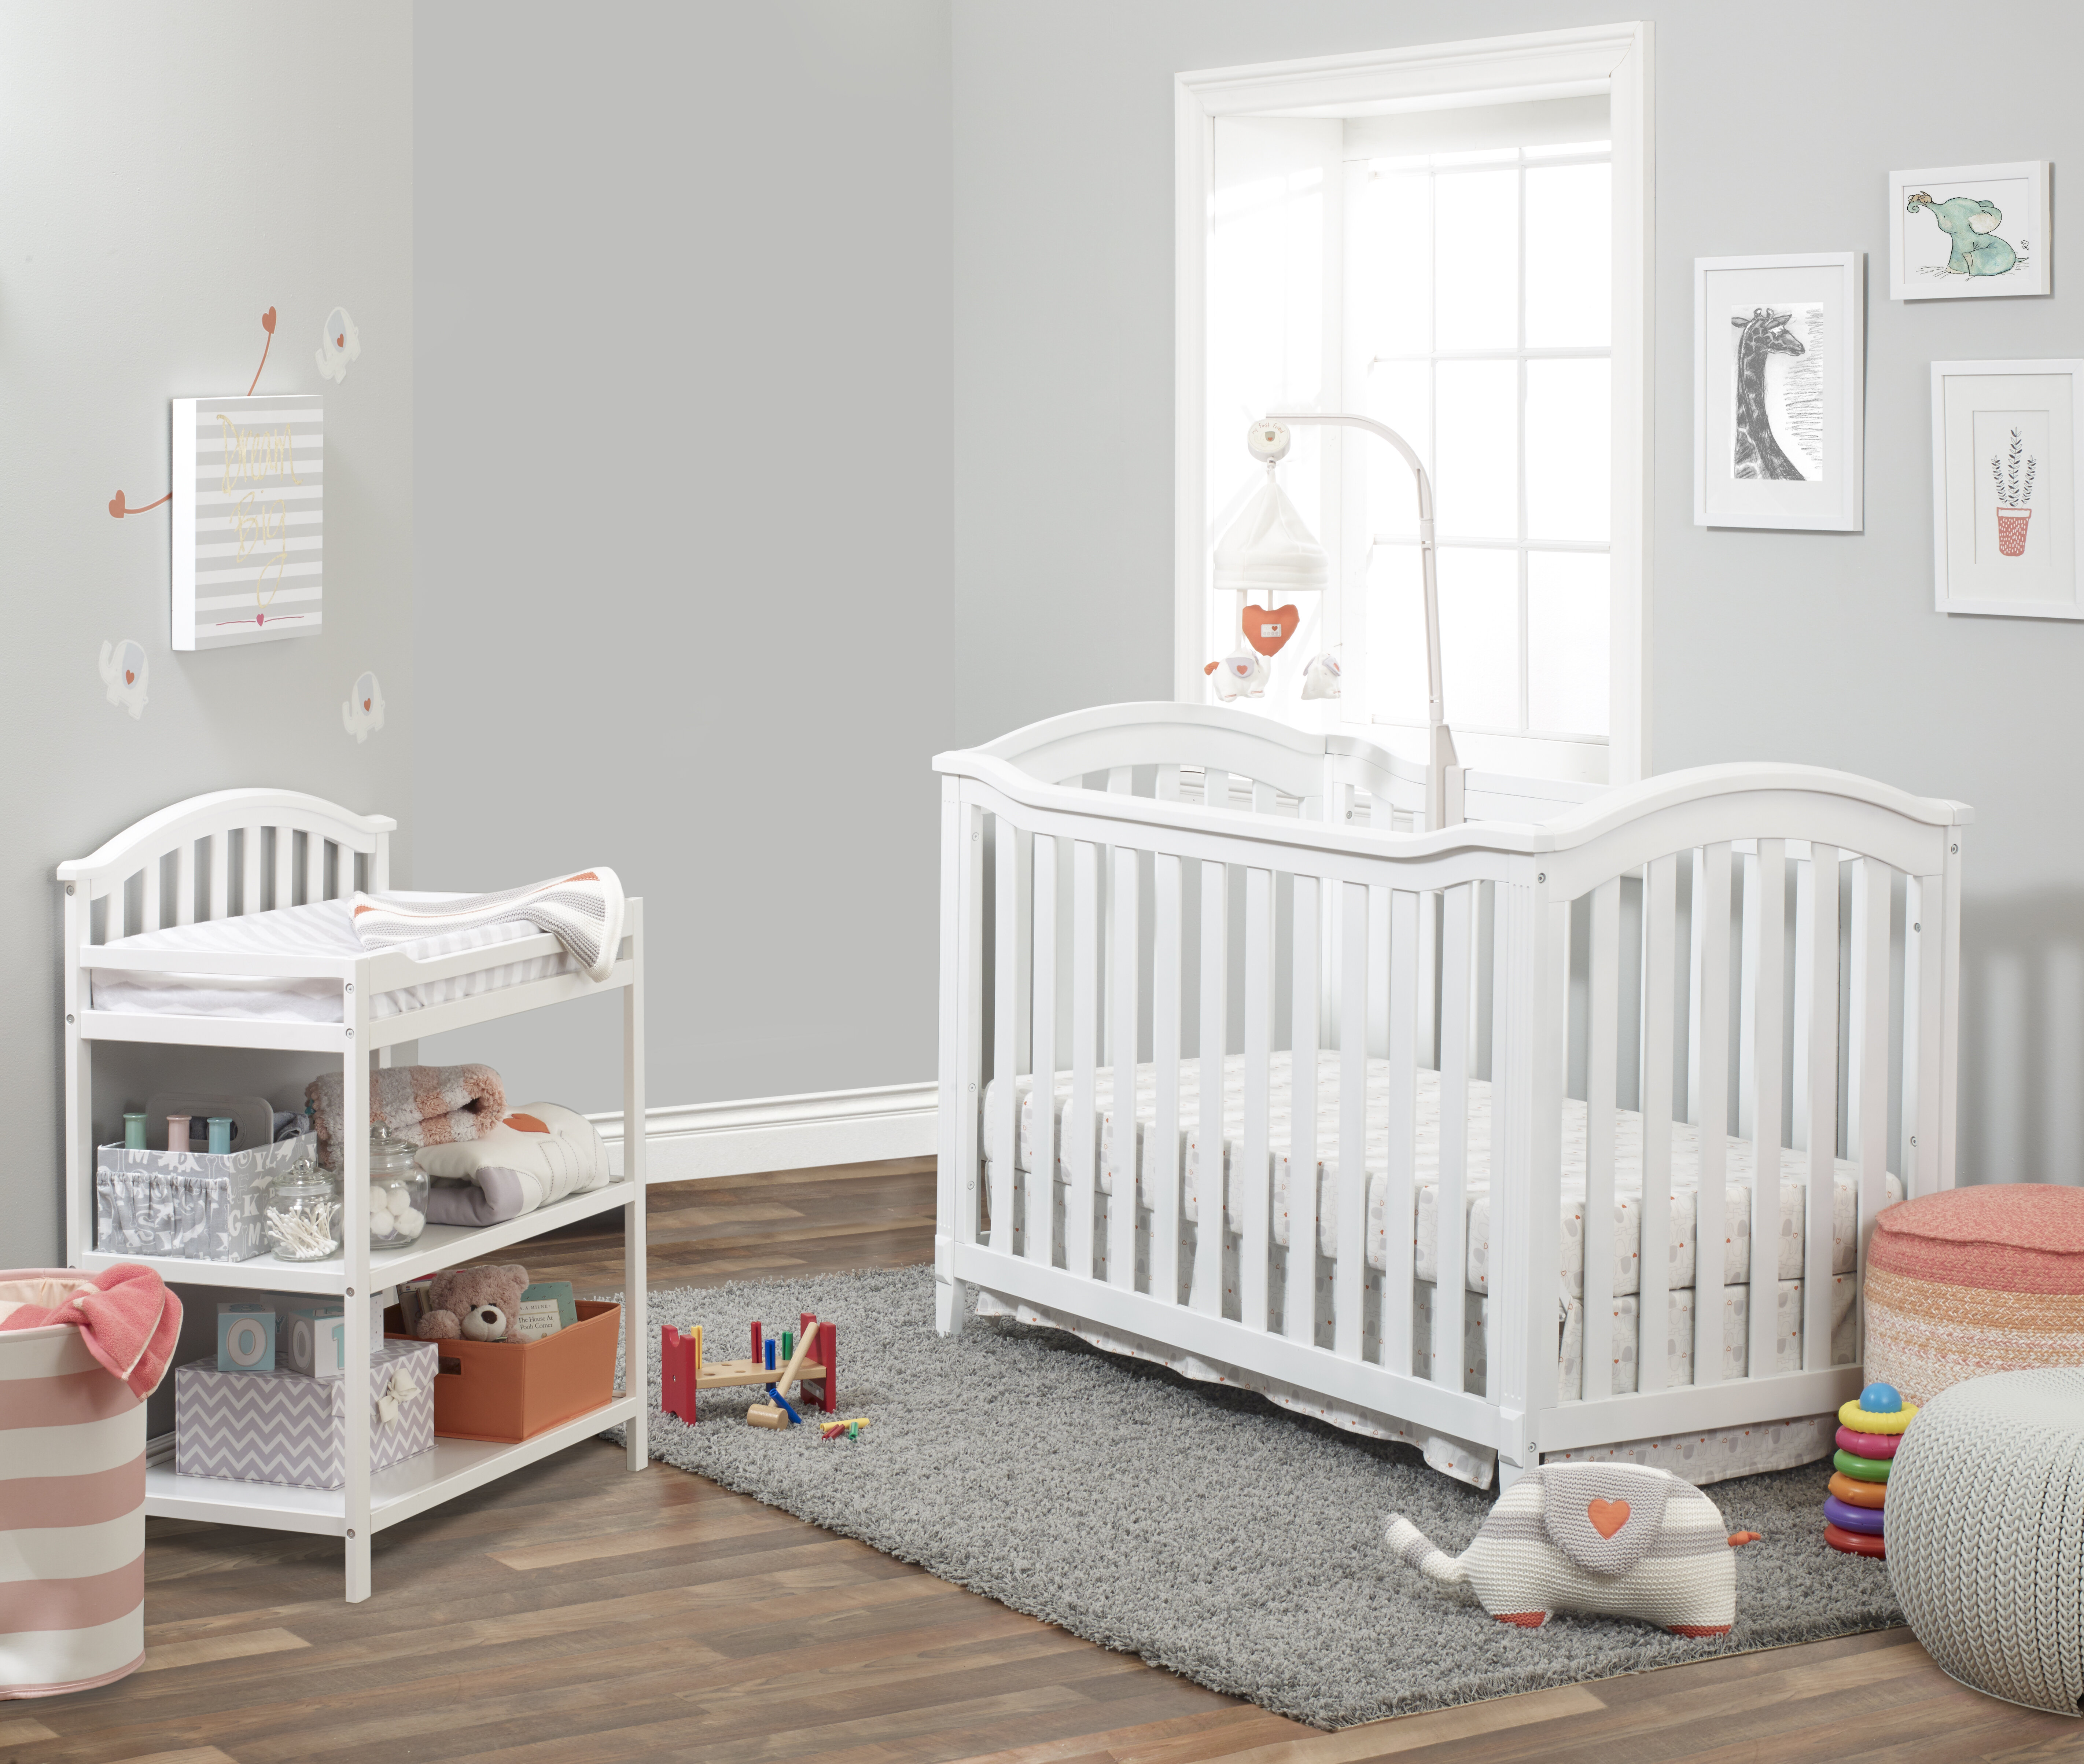 65ad1e0054 Sorelle Berkley Classic 4-in-1 Convertible 2 Piece Crib Set   Reviews